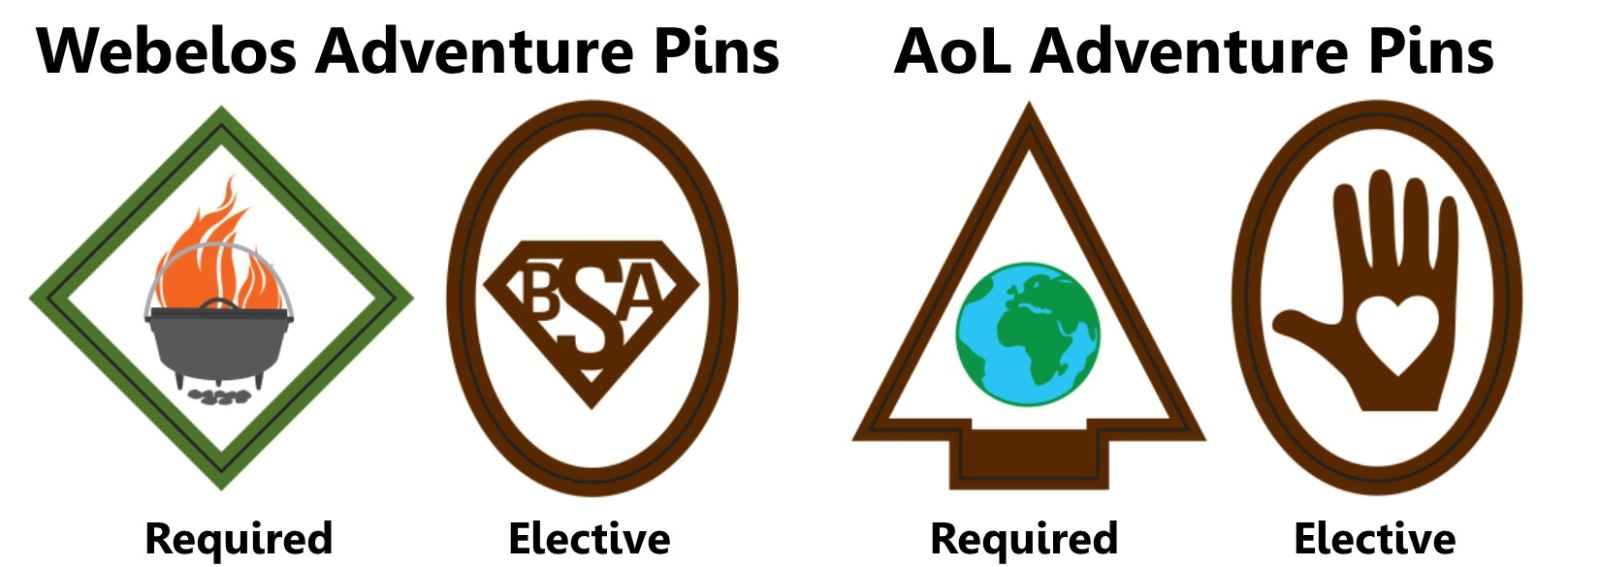 Adventure pinsg elective adventures for webelos and arrow of light brown monochromatic oval pins buycottarizona Choice Image